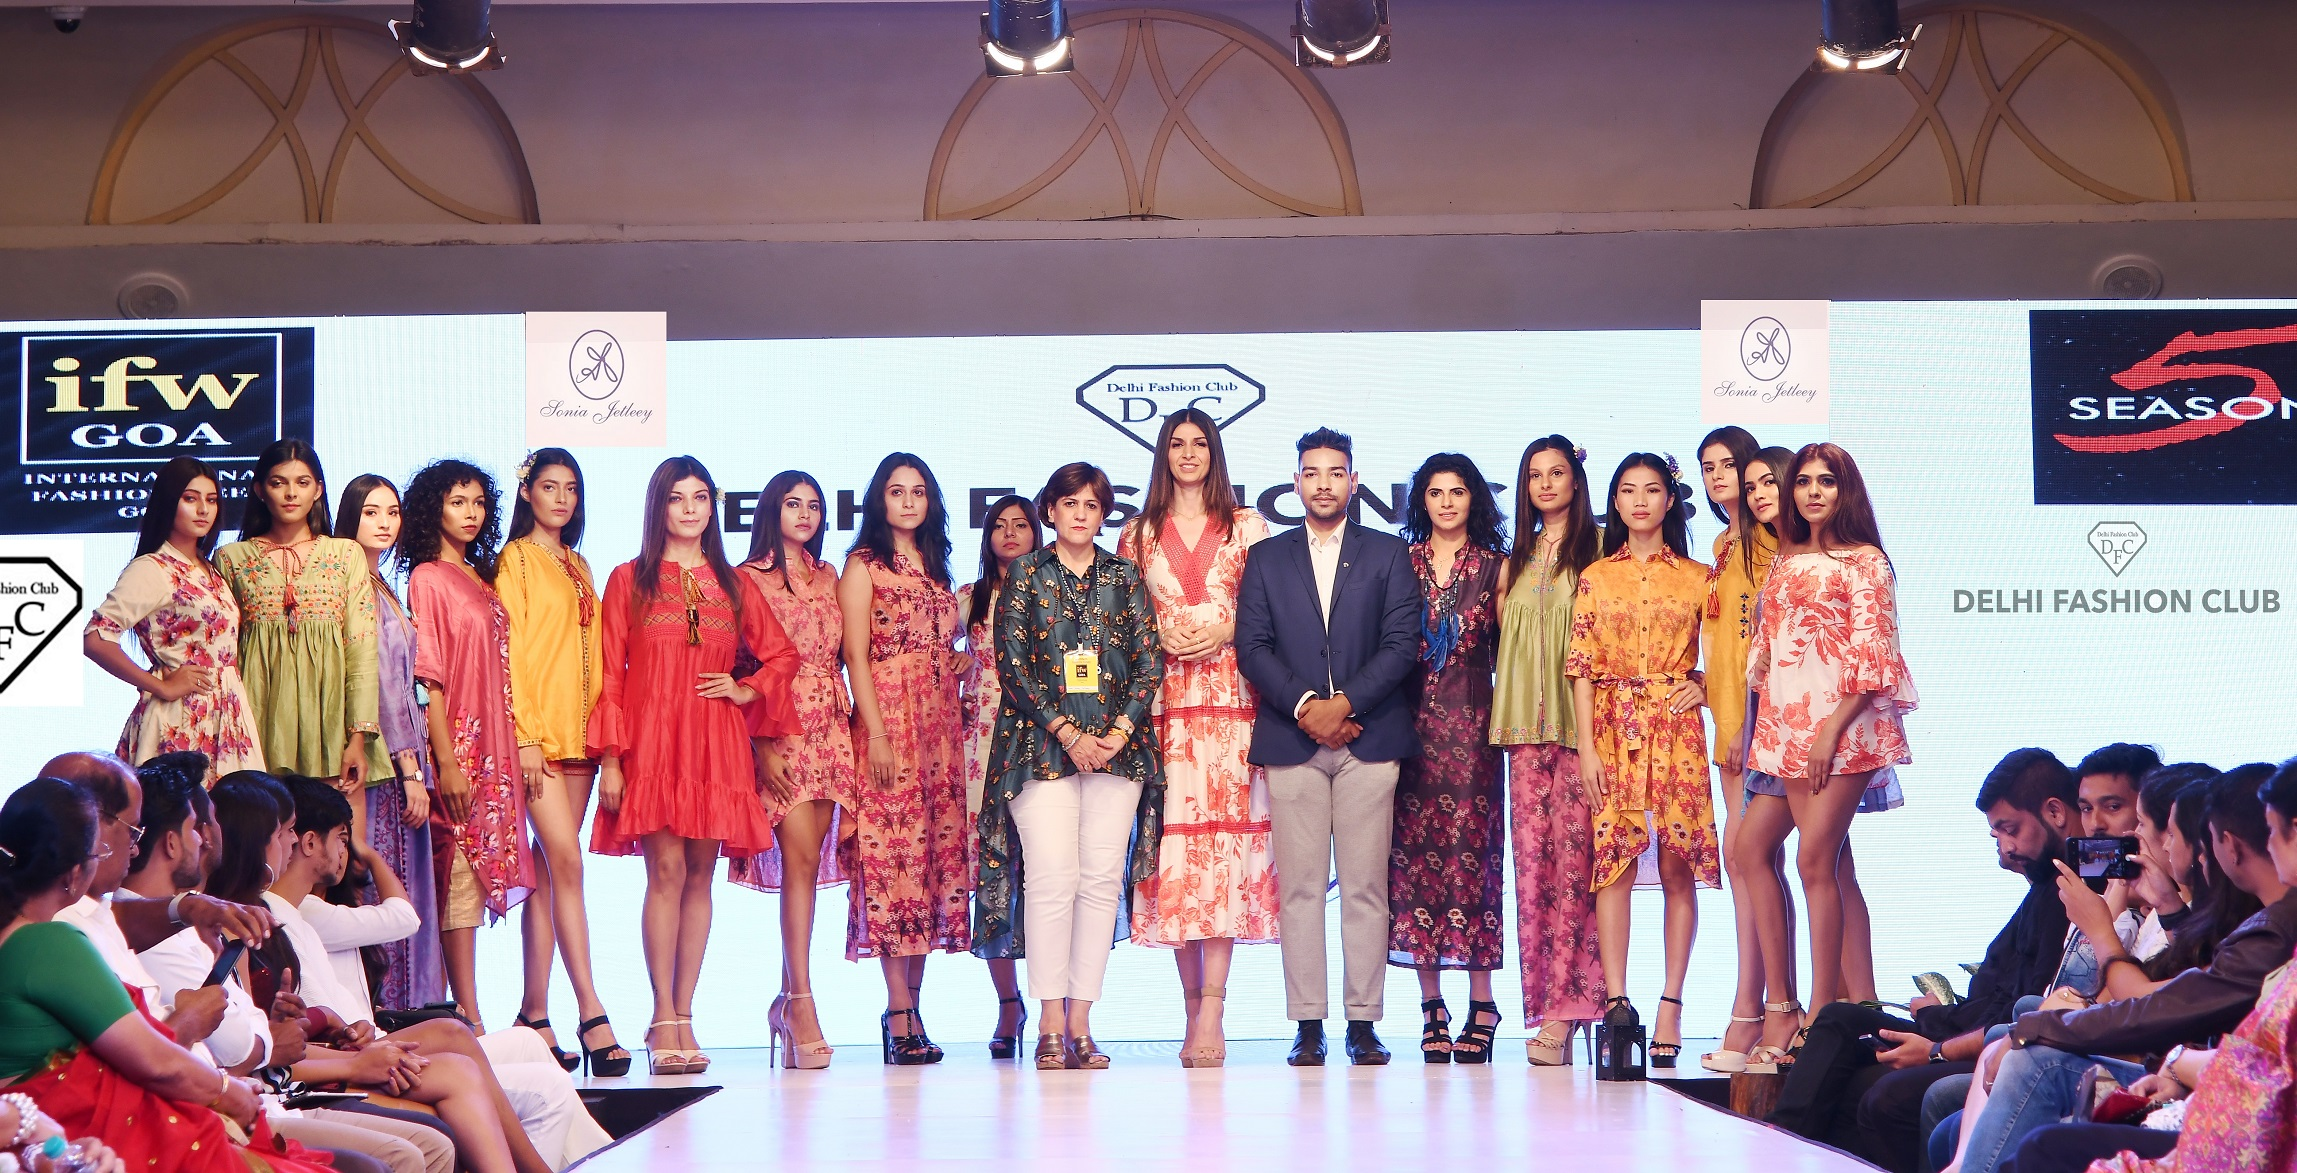 Delhi Fashion Club Promotes Sustainable Fashion & Handlooms at International Fashion Week Goa